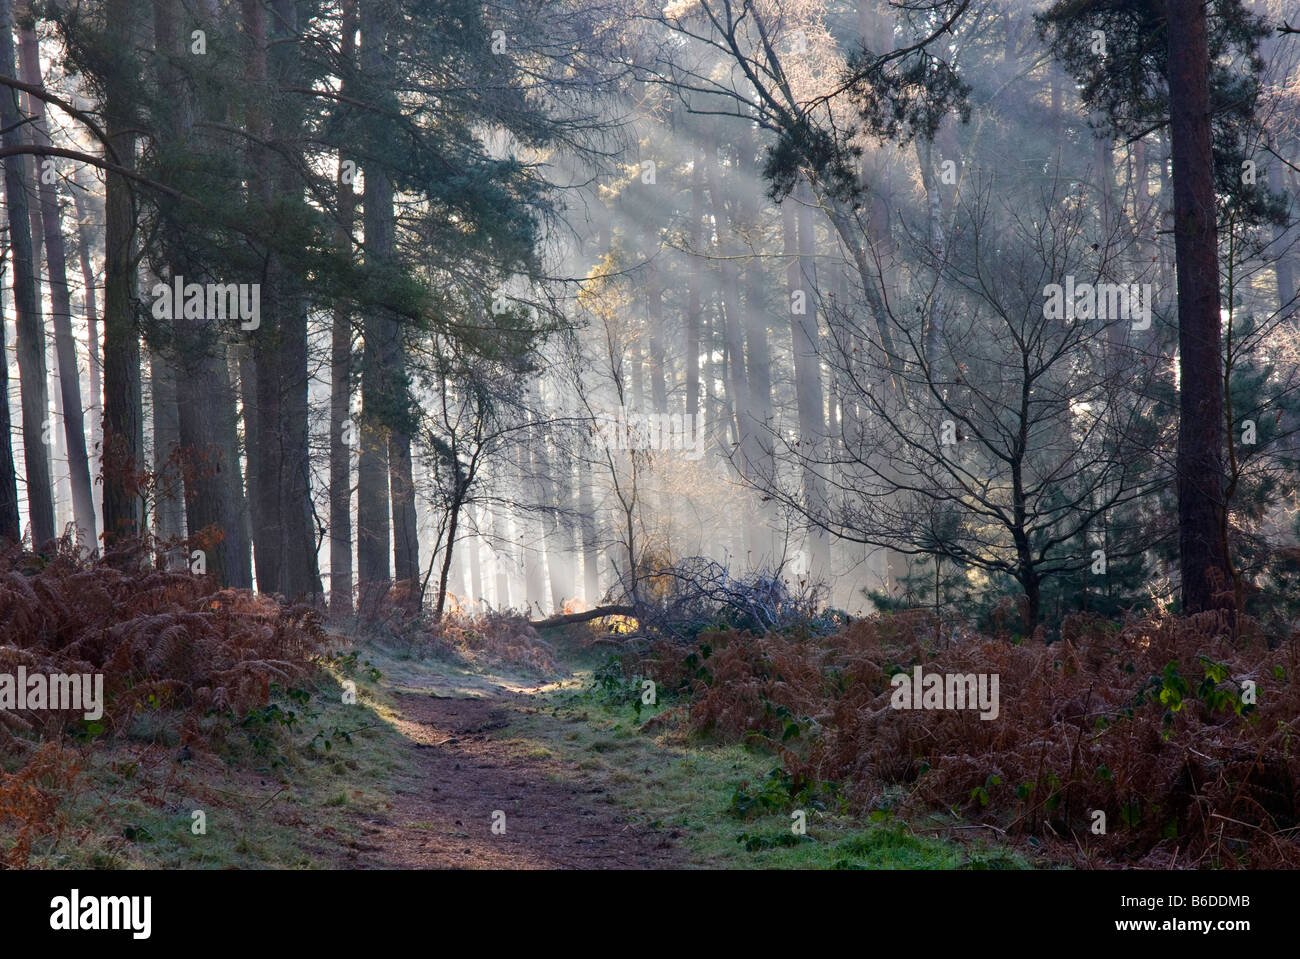 'sun beams' shining through trees on a misty morning in woodland - Stock Image